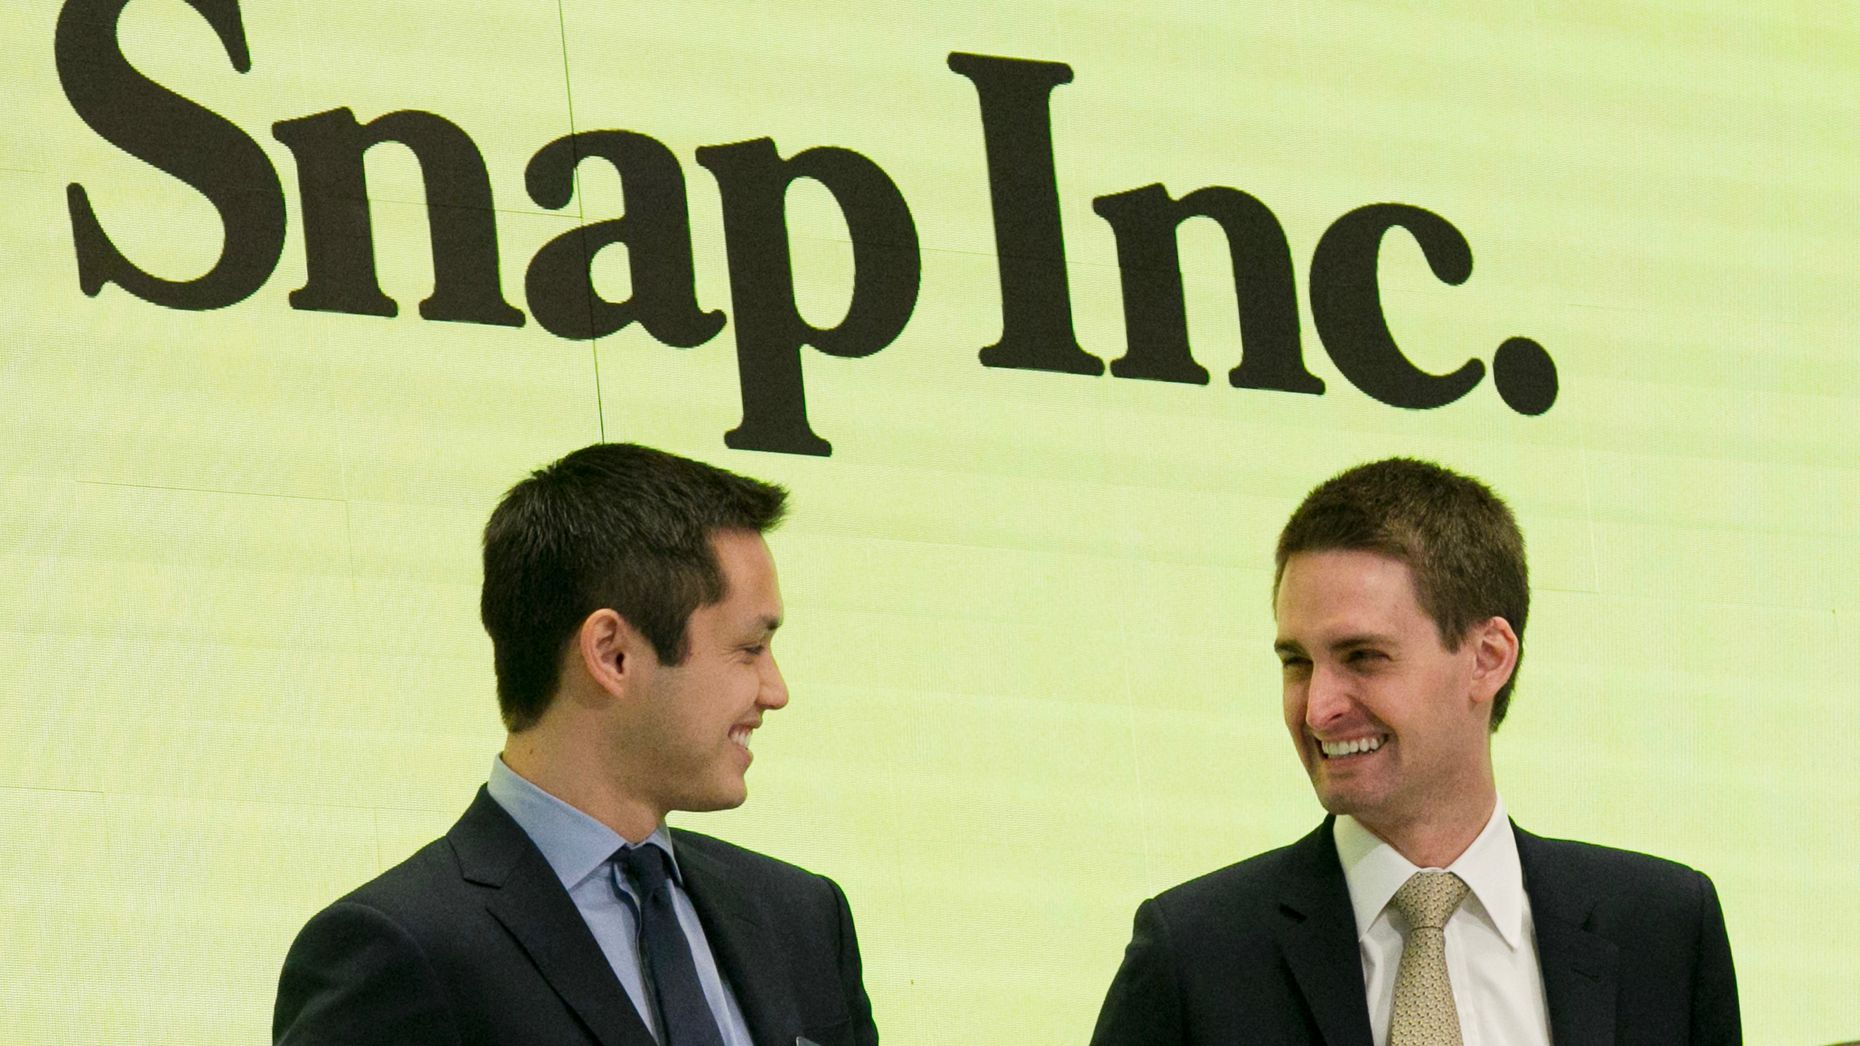 Snap's co founders, Bobby Murphy and Evan Spiegel at the New York Stock Exchange last year. Photo by AP.